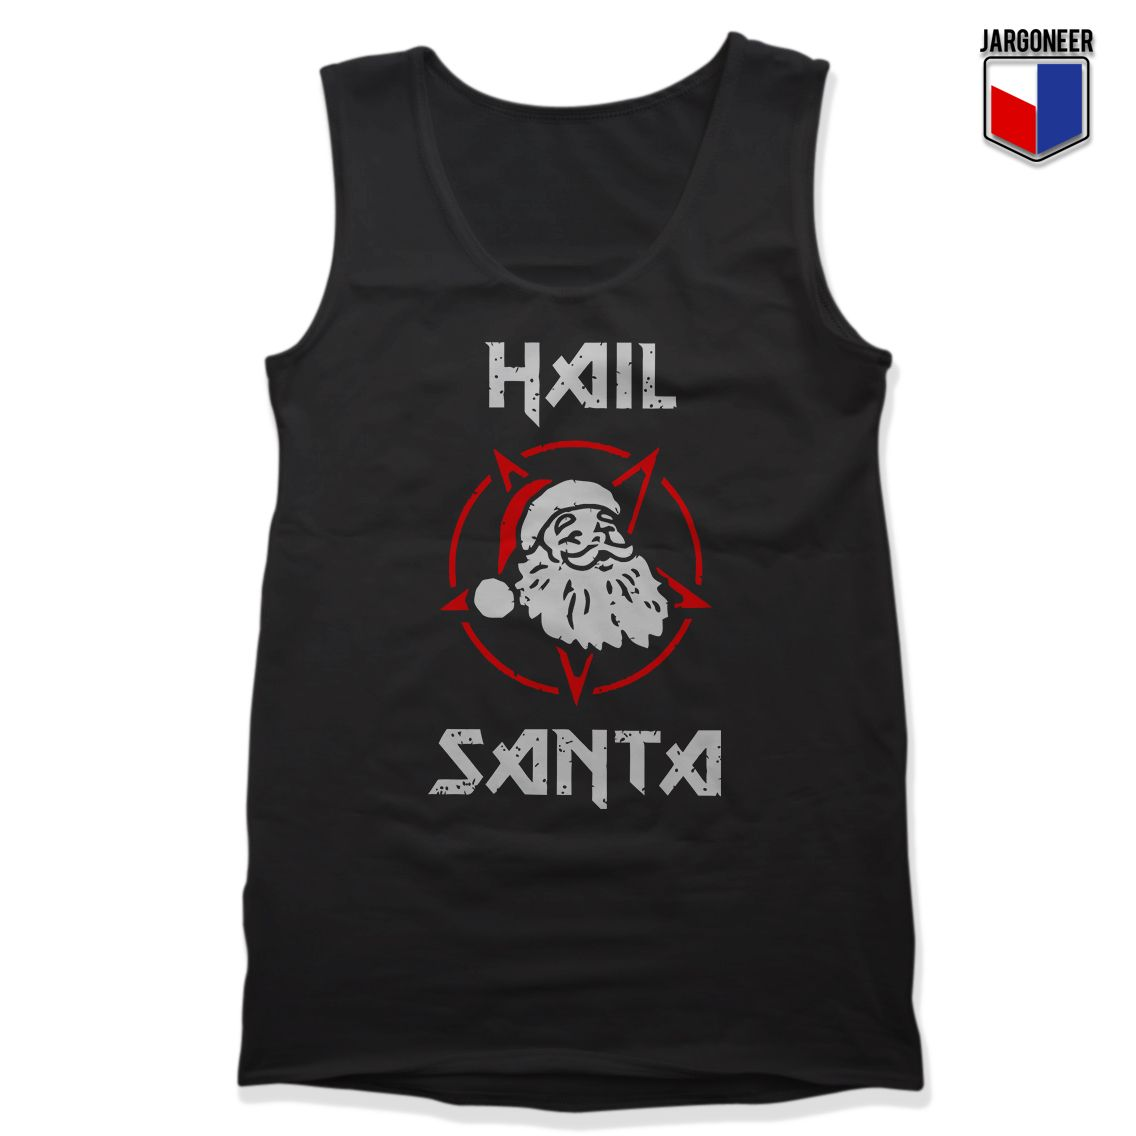 5396b88f6700c Christmas · Unisex · Awesome · Gift · Hail Satan Claus Unisex Adult Tank Top    Price   13.99 Awesome Design for shirt